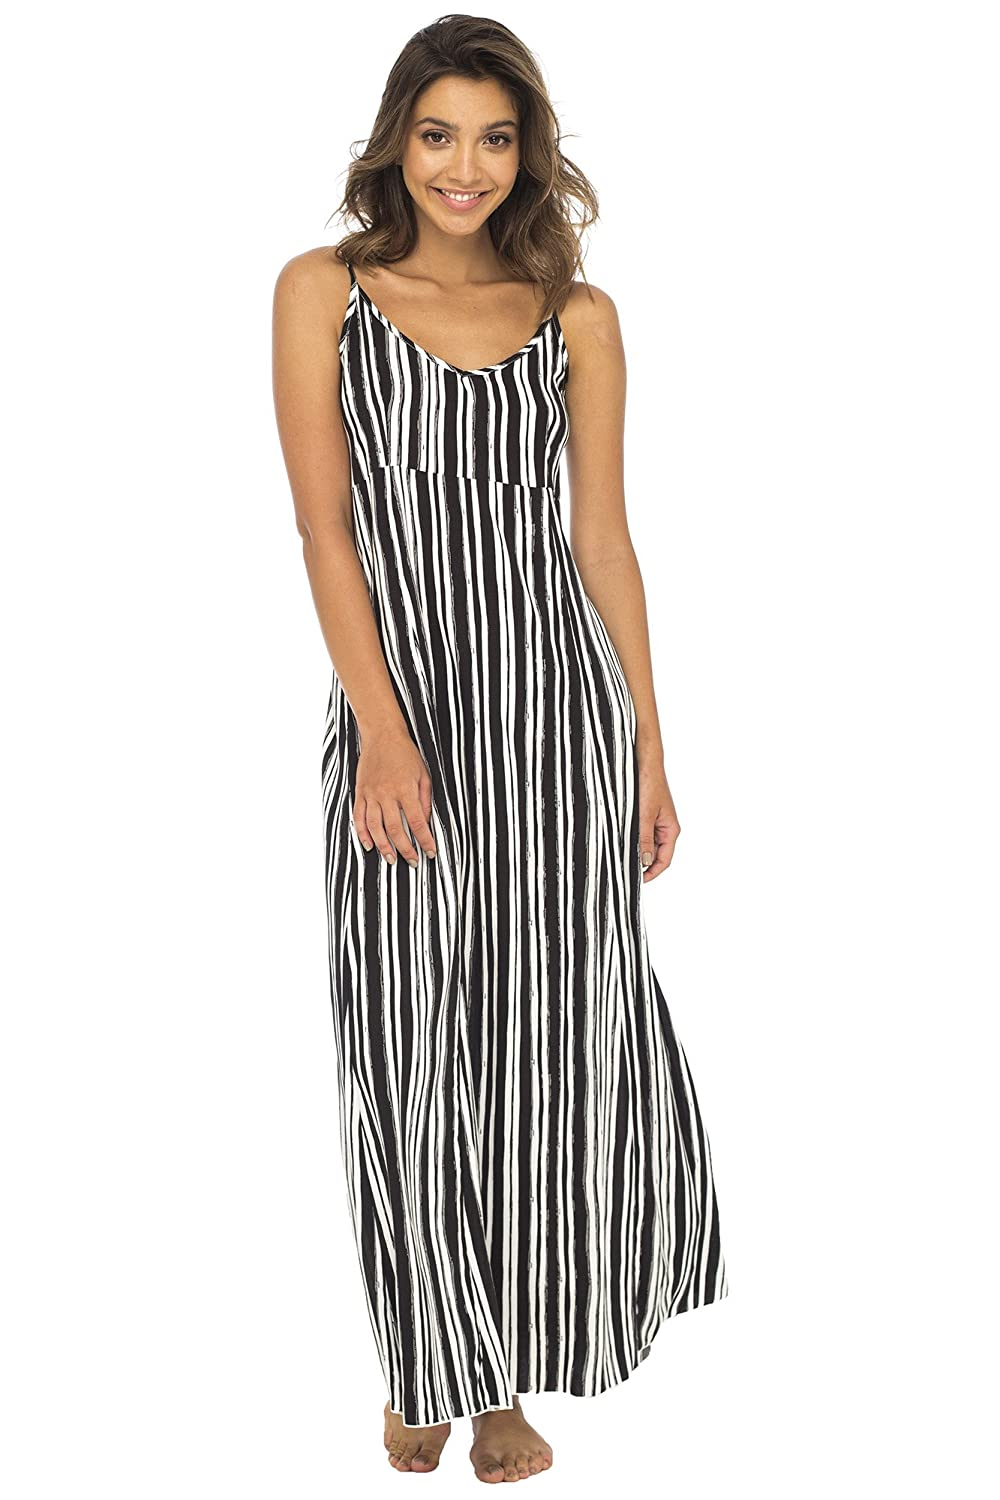 bf0c06d304fd Back From Bali Womens Sleeveless Summer Maxi Dress, Long Casual Striped  Sexy Beach Dress at Amazon Women's Clothing store: